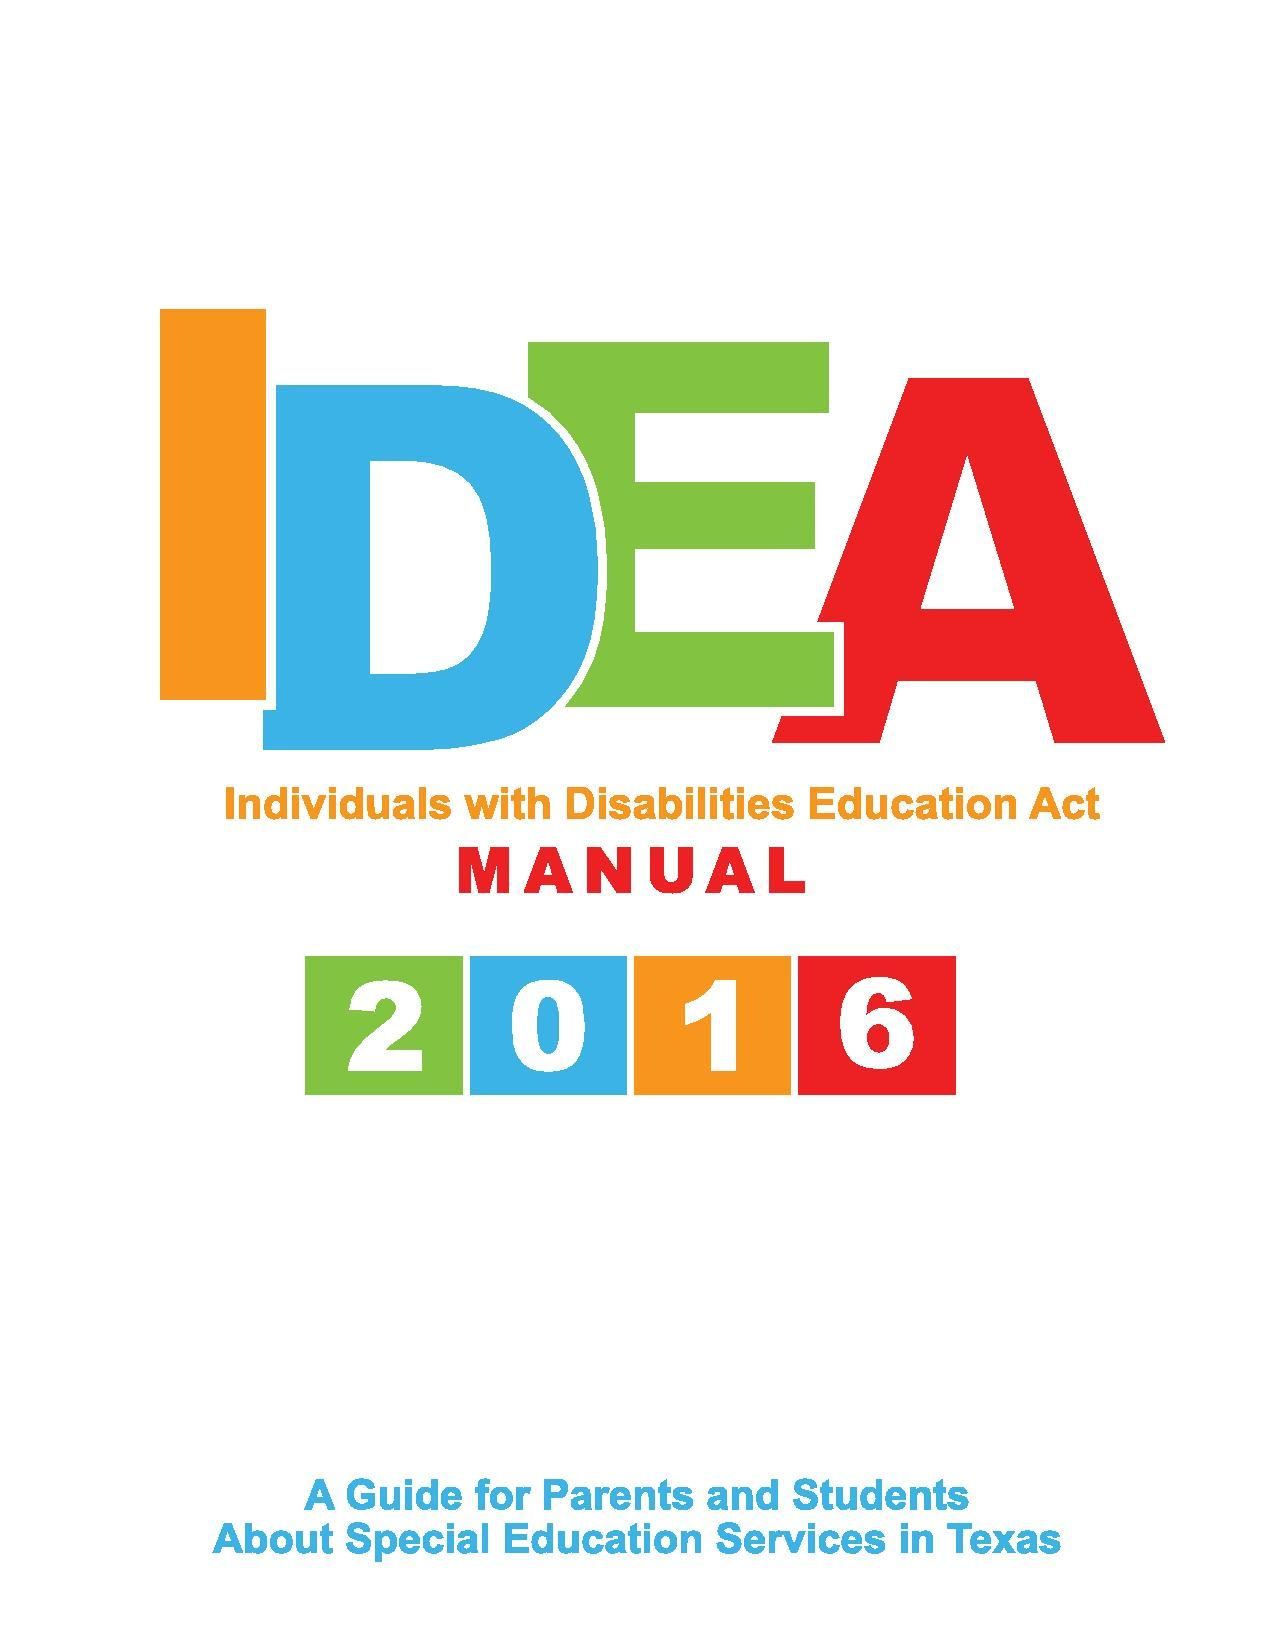 IDEA Manual - A Guide for Parents and Students About Special Education  Services in Texas.